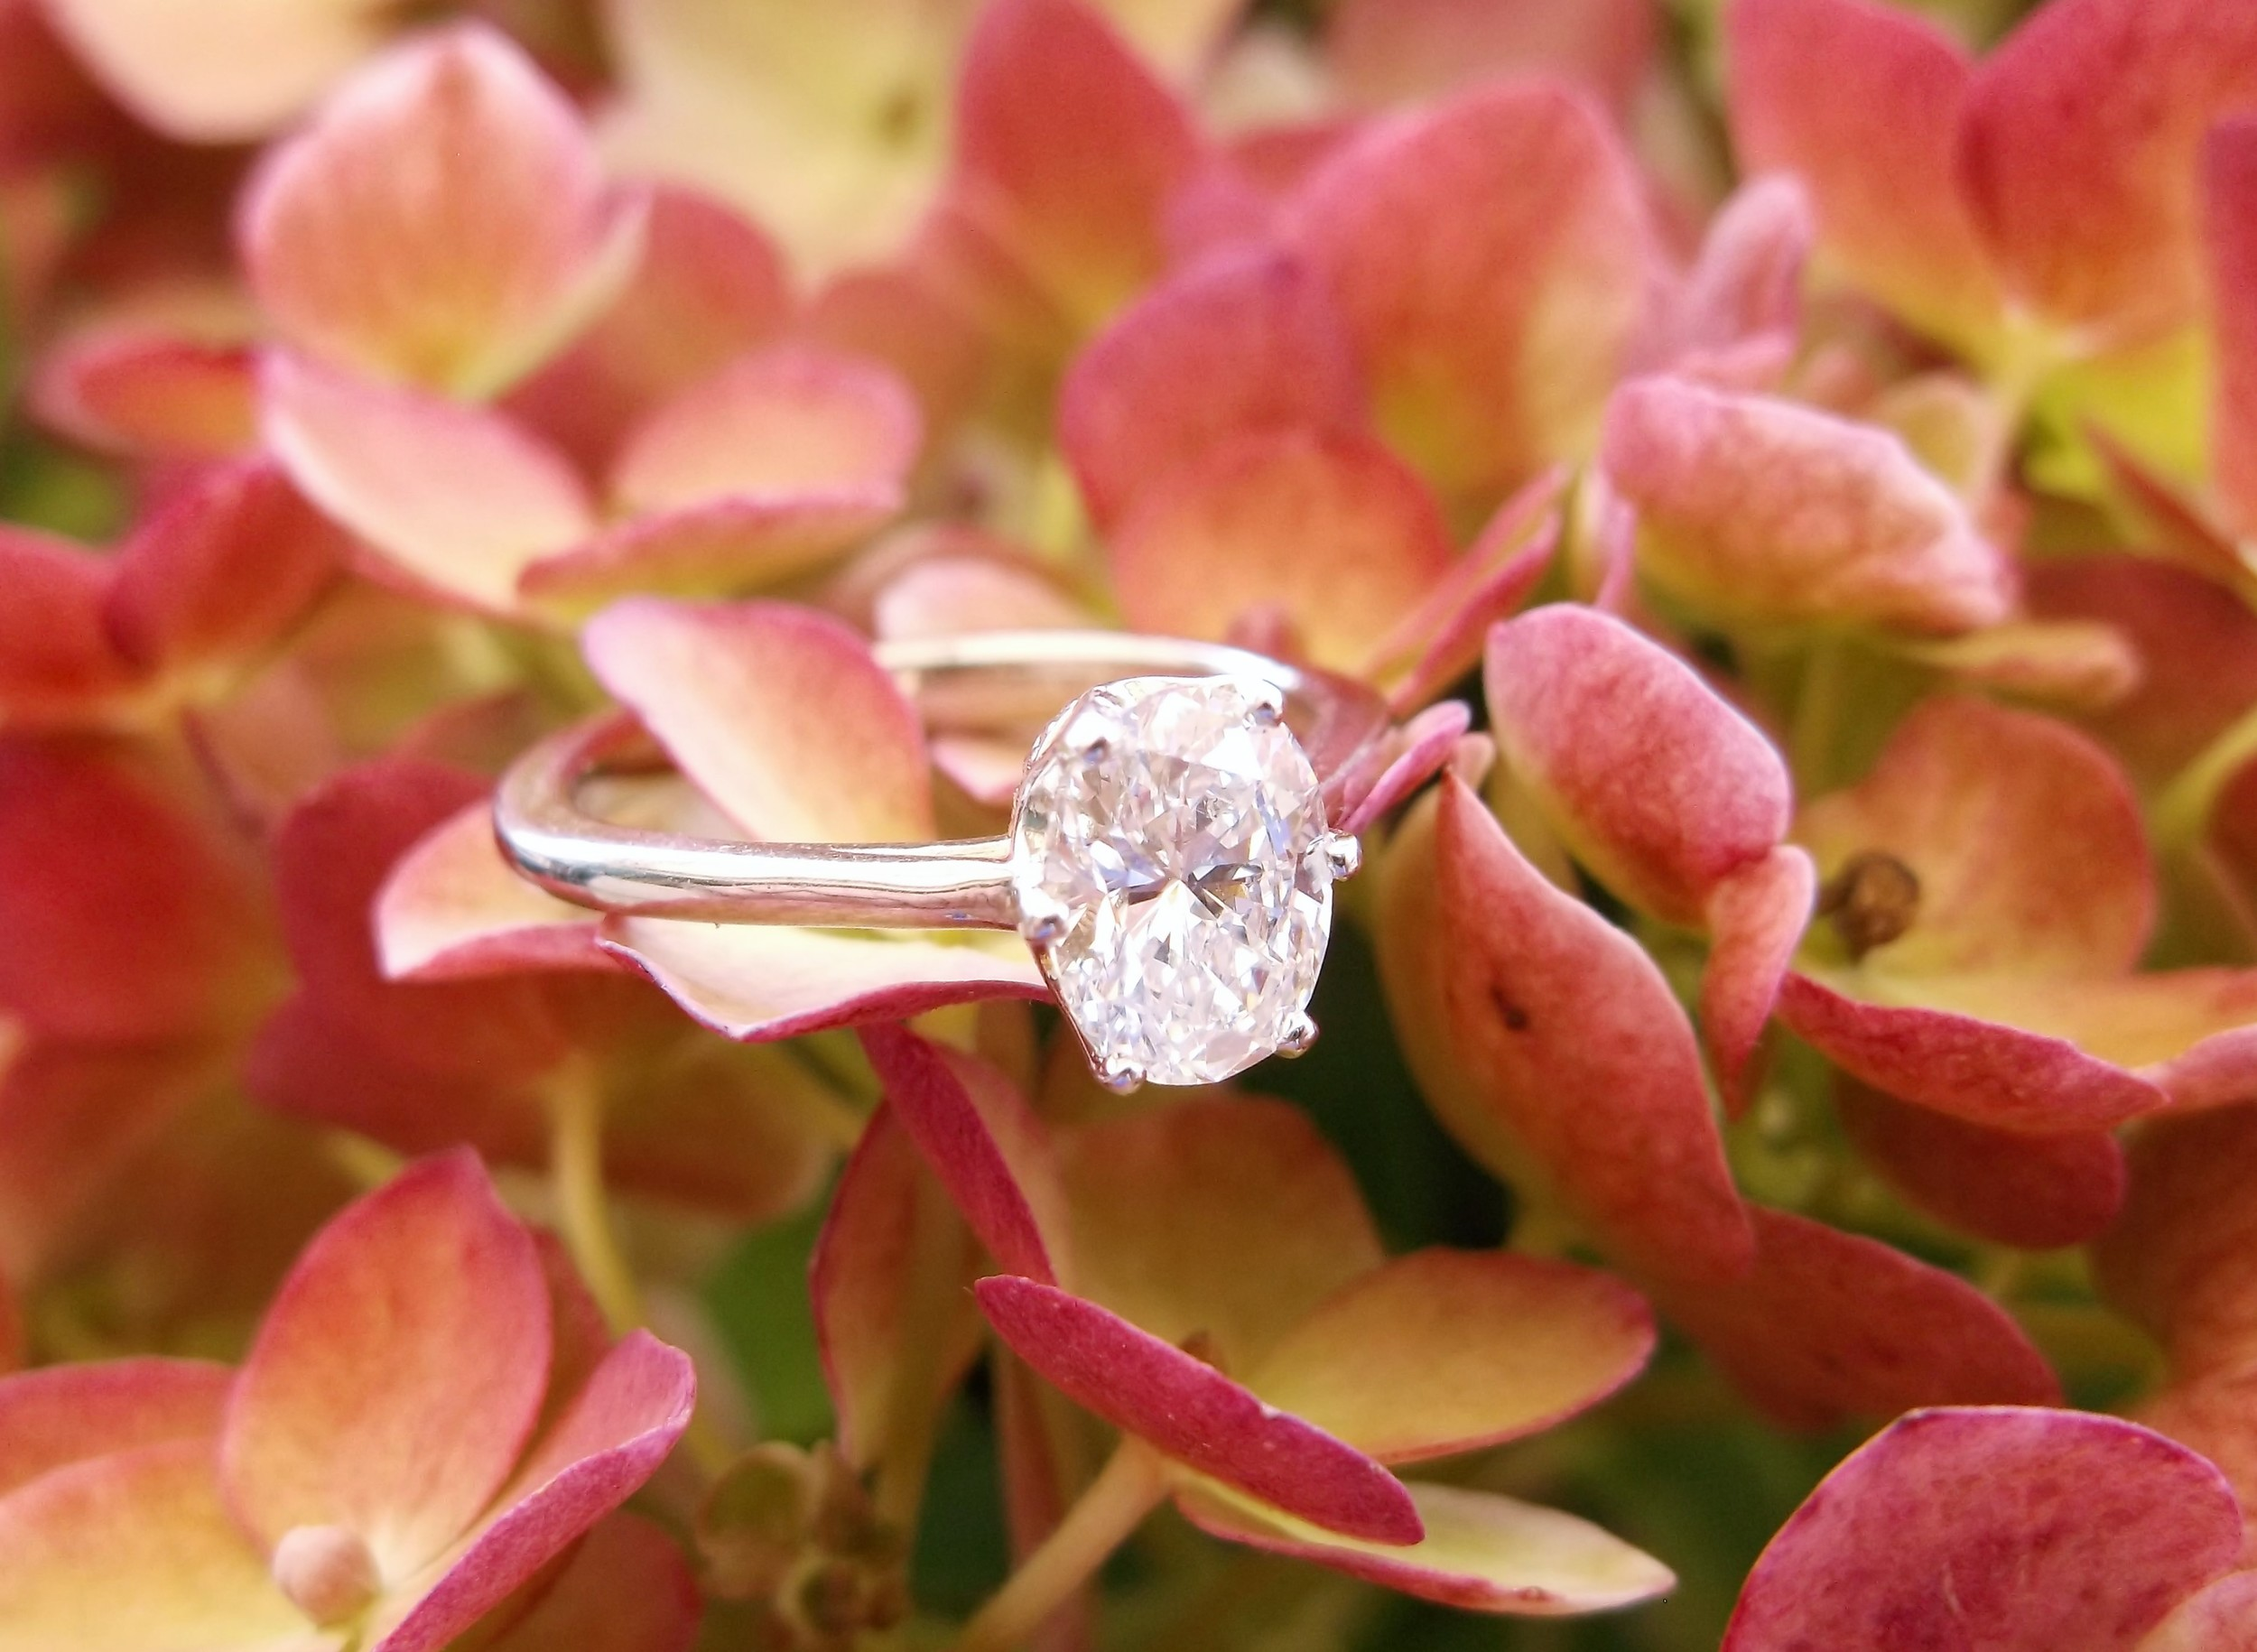 SOLD - A classic engagement ring look, with a little twist! 0.78 carat oval cut diamond set in a white gold, six prong solitaire setting.